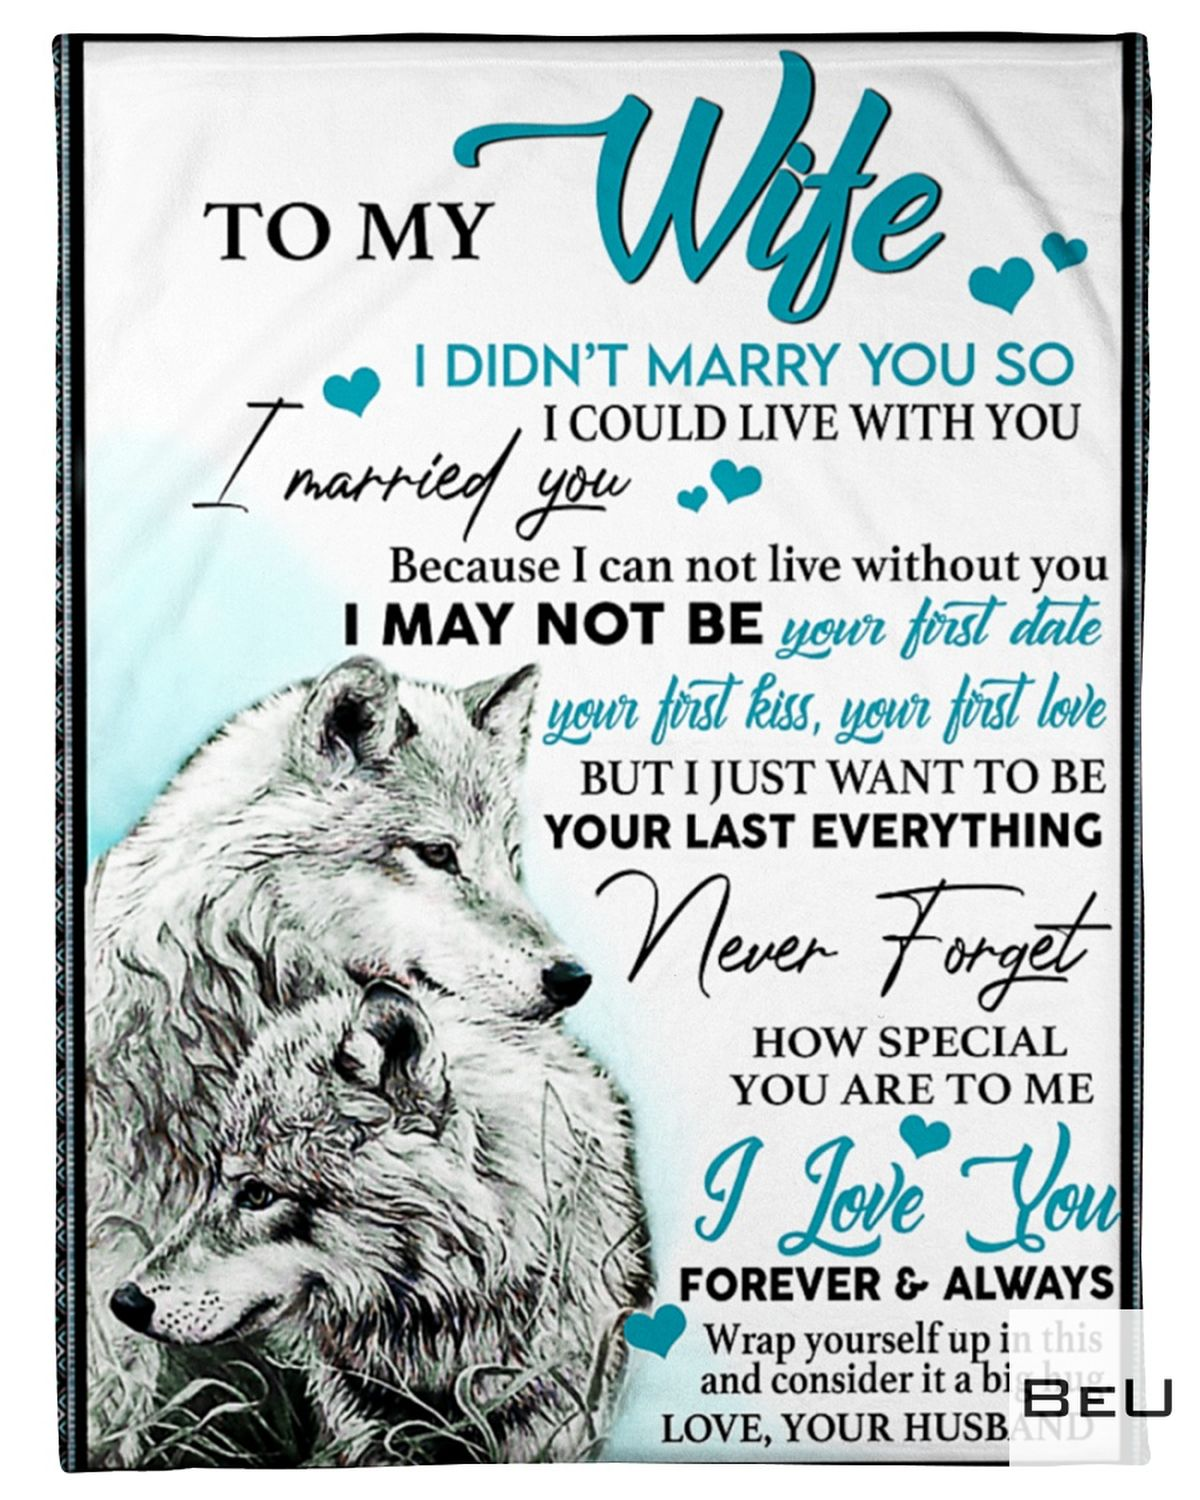 To My Wife I Didn't Marry You So I Could Live With You Ove You Your Husband Fleece Blanket